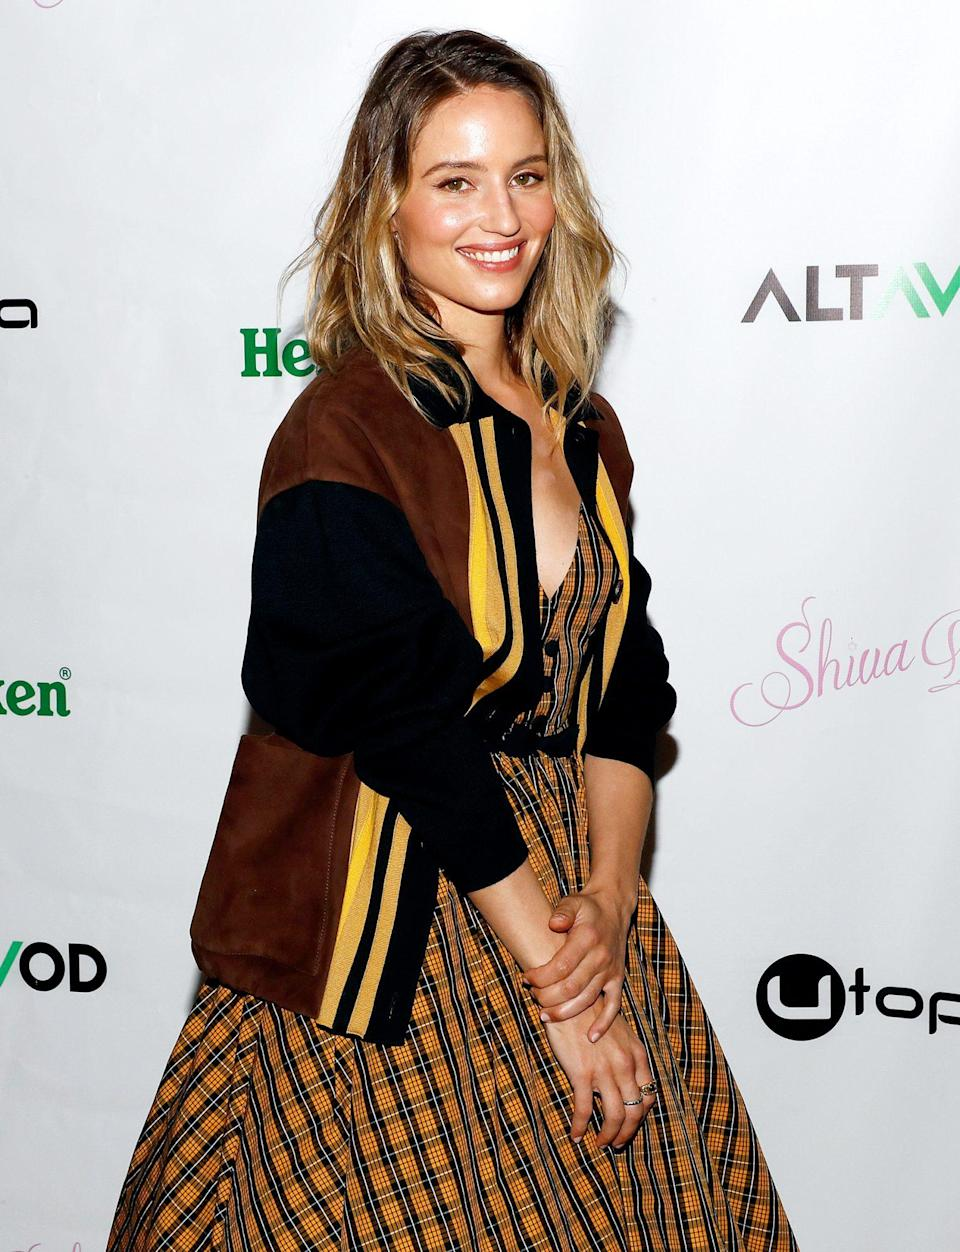 <p>Dianna Agron attends the <em>Shiva Baby</em> premiere, sponsored by Heineken and Utopia Films, at The William Vale Hotel in Brooklyn on Tuesday night. </p>